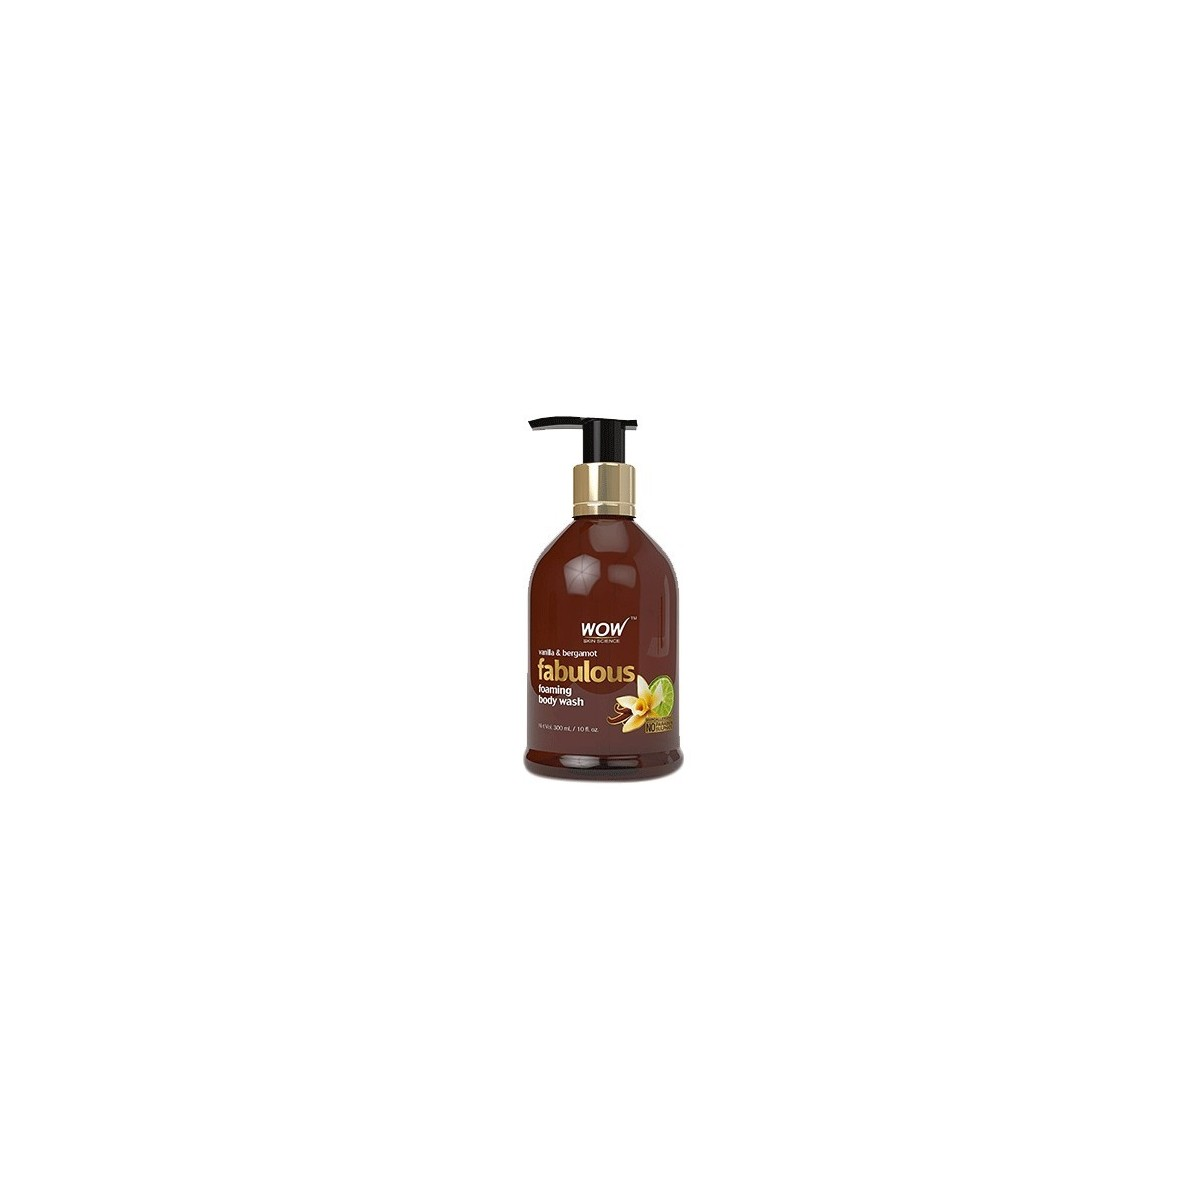 Wow Bergamot & Vanilla Foaming Body Wash - 300 Ml